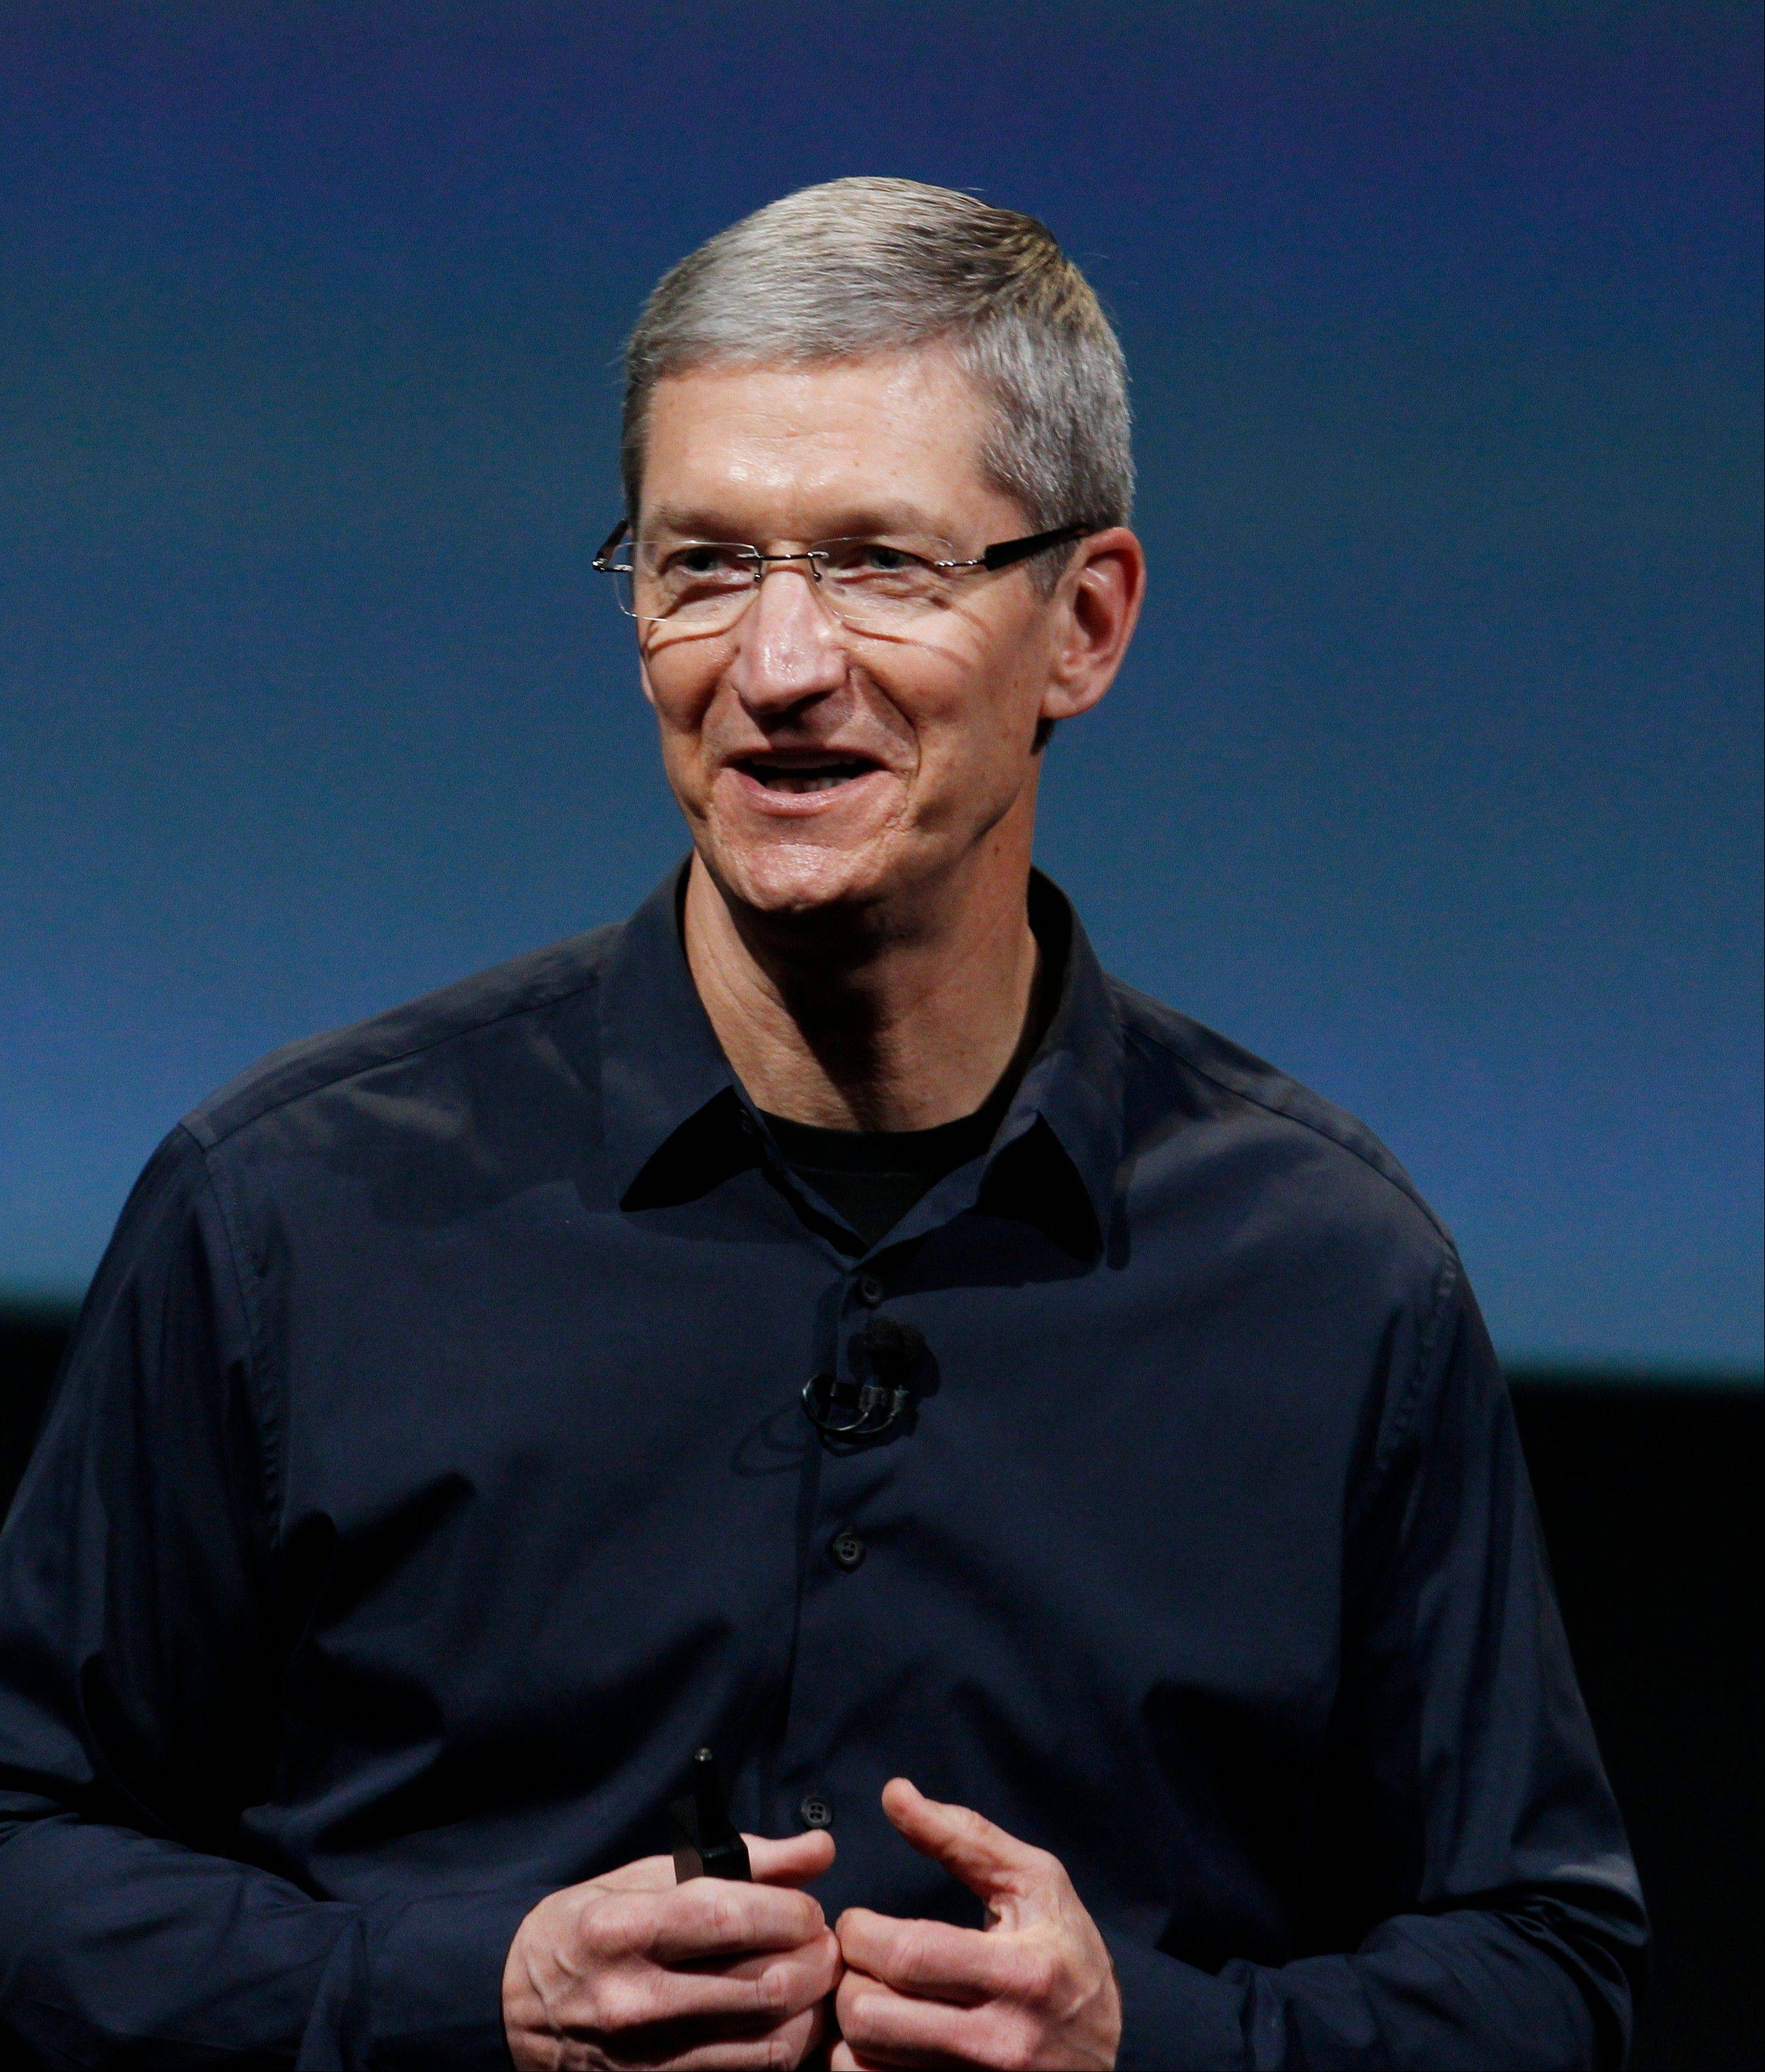 Apple CEO Tim Cook, seen here during a product announcement in 2011, is facing some pressure to maintain a company that under late founder Steve Jobs was a leader in the tech field.